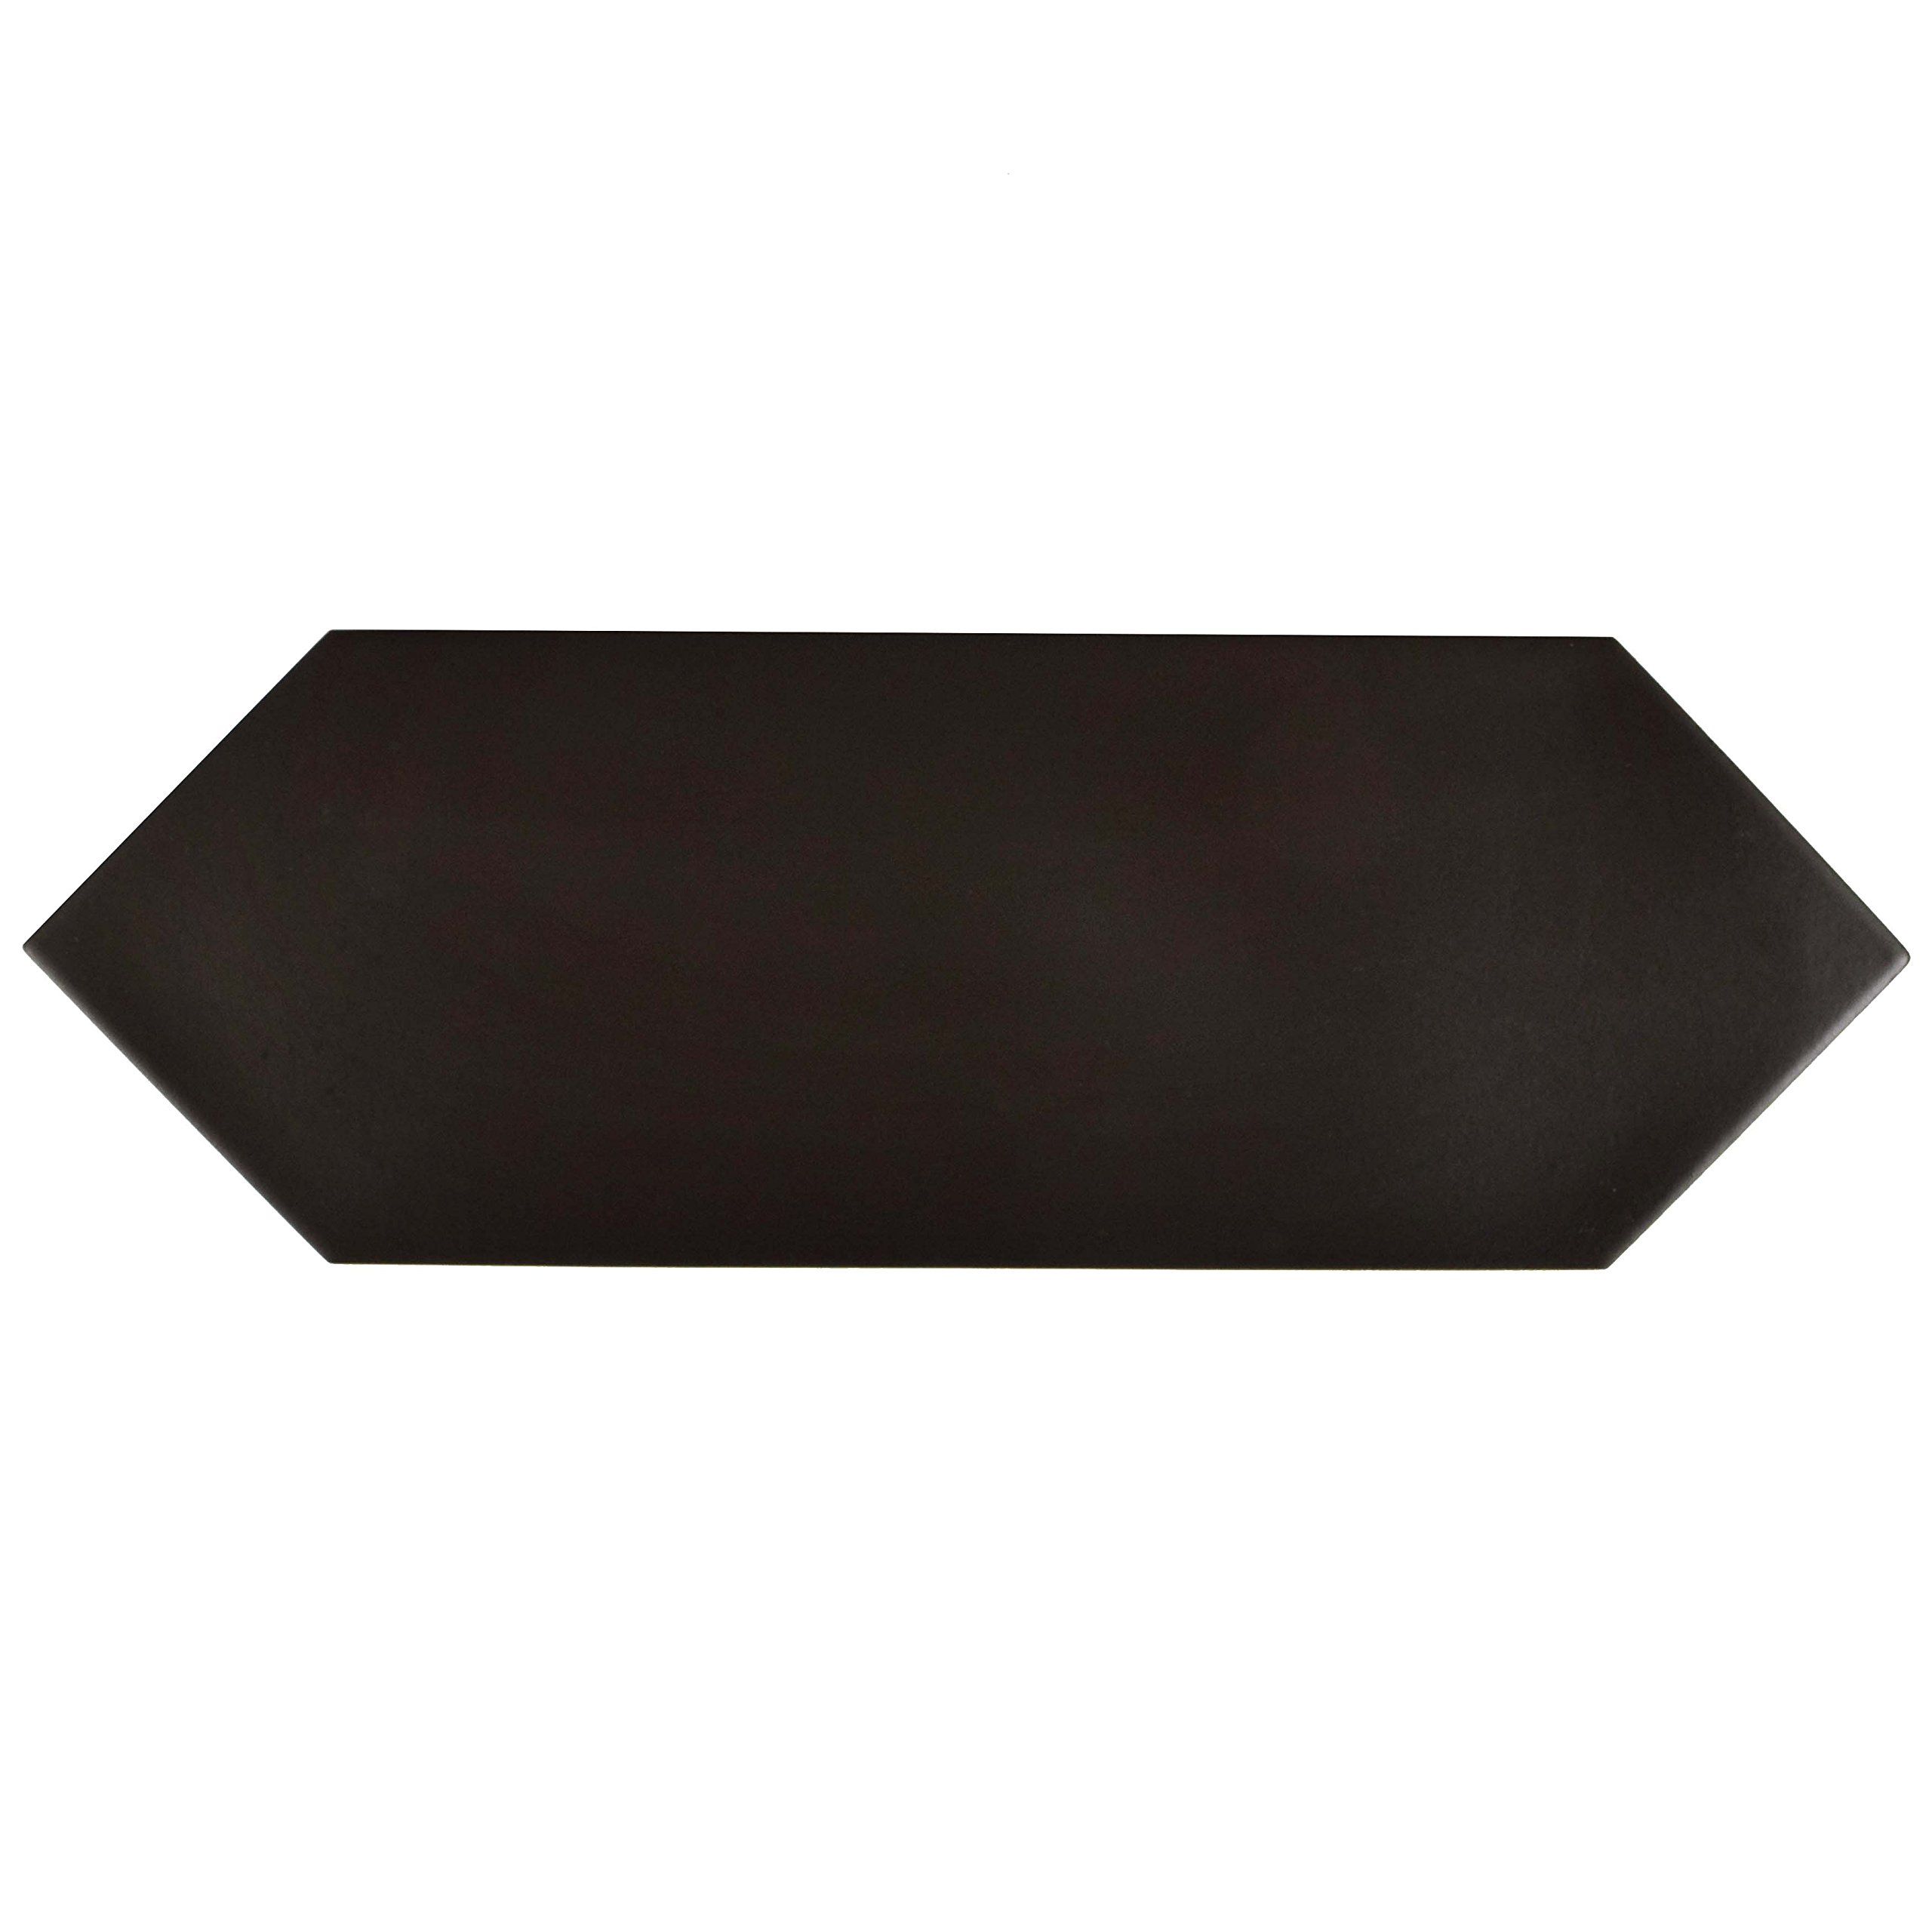 SomerTile FEQ12KBK Cometi Porcelain Floor & Wall Tile, 4'' x 11.75'', Black